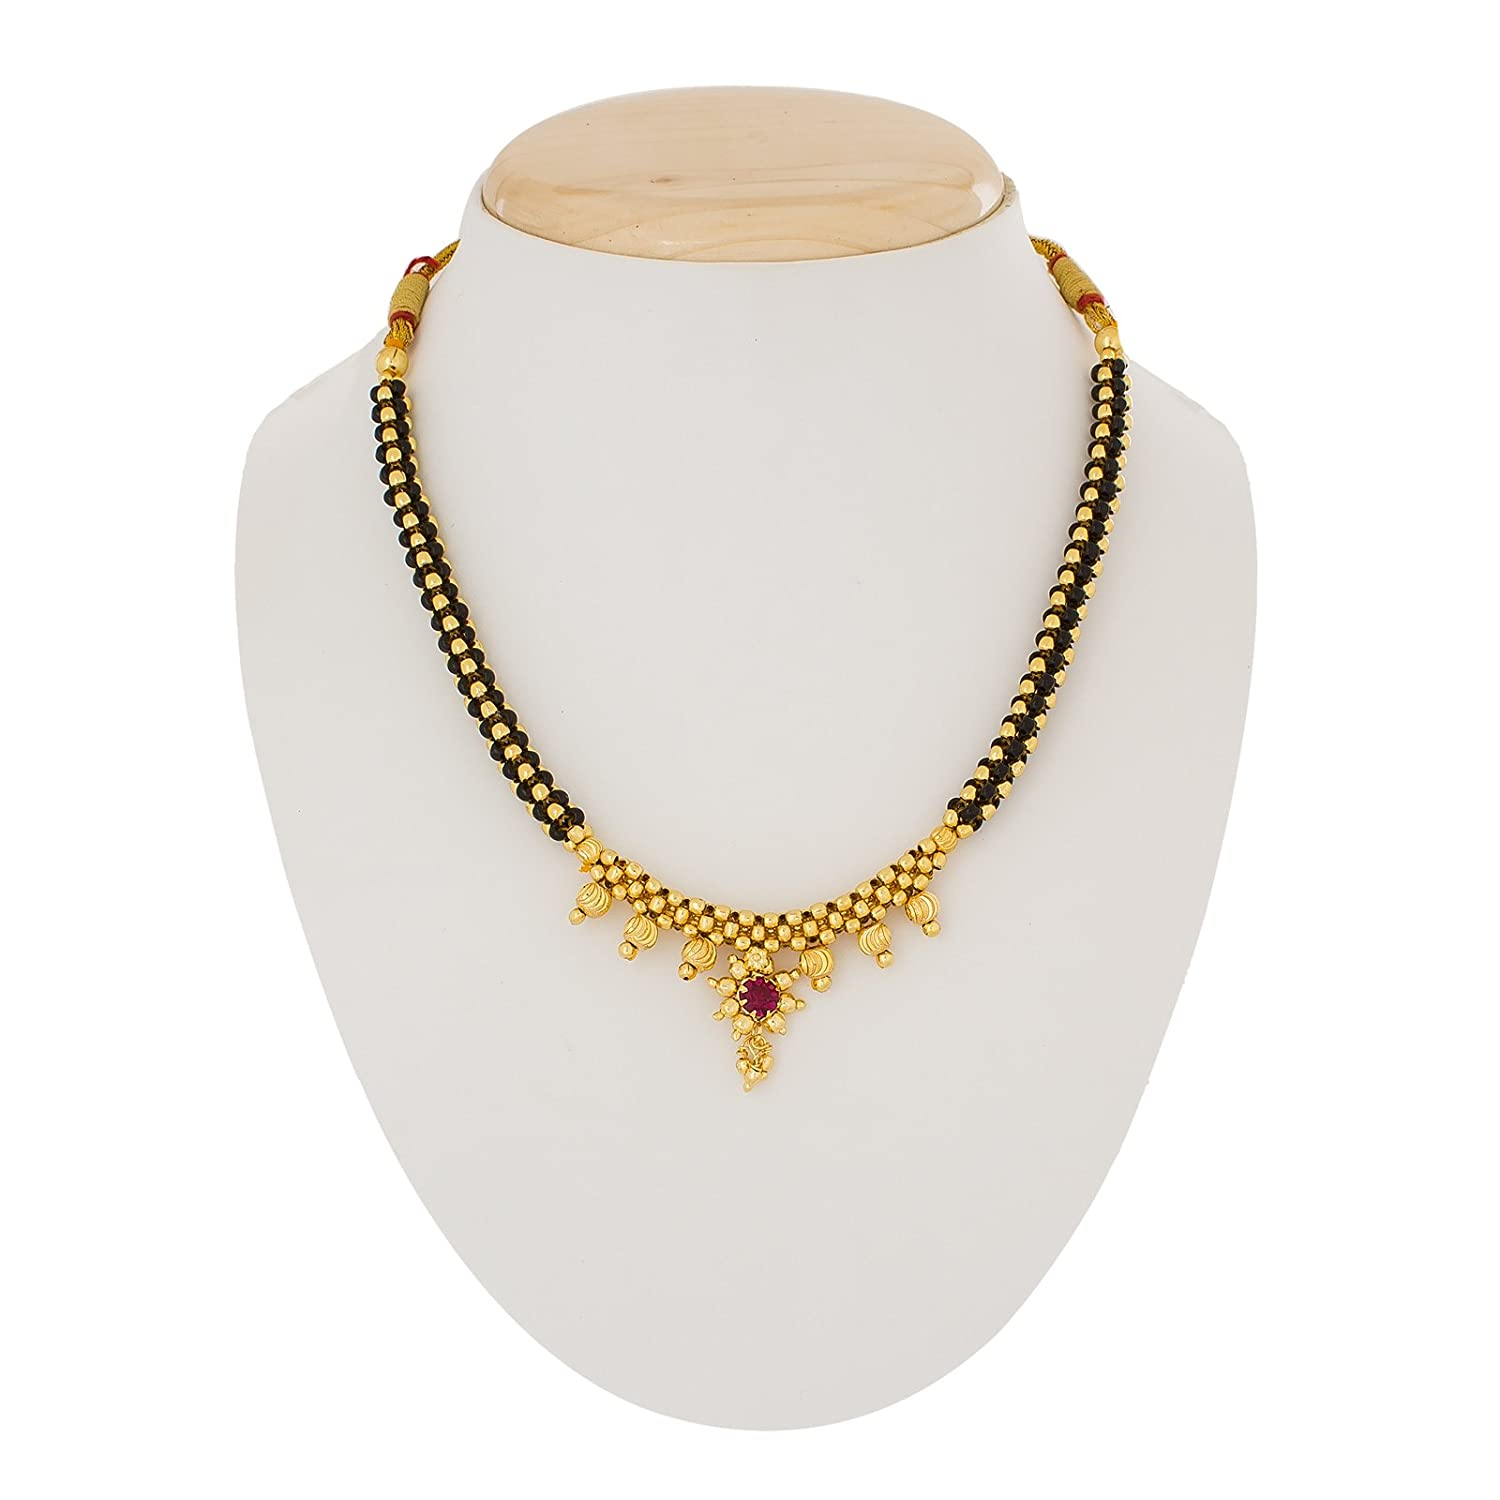 Gold Plated Alloy With Pearls Mangalsutra Necklace For Women-Life Keep Teaching